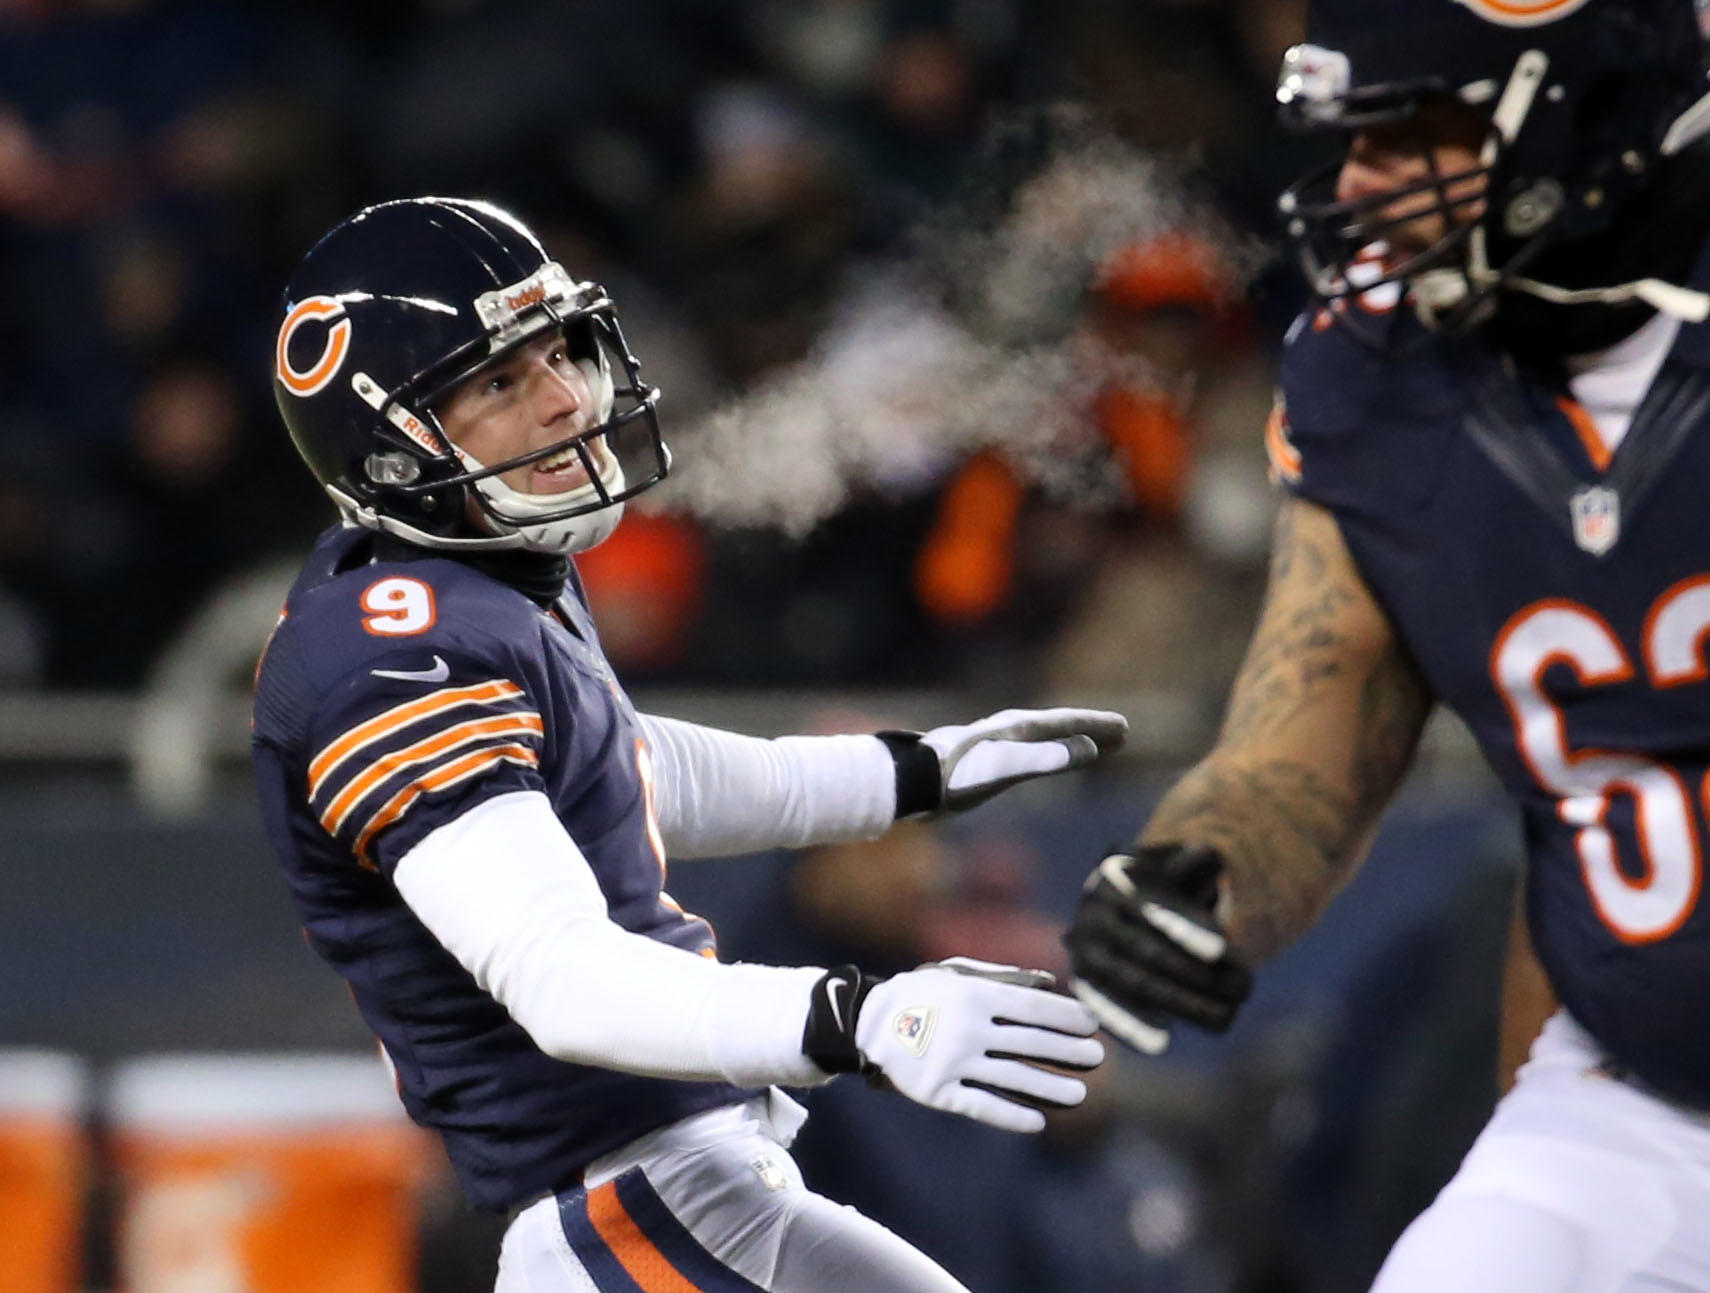 Chicago Bears kicker Robbie Gould exhales as he connects on a field goal in the third quarter against Dallas on Dec. 9, 2013 at Soldier Field.